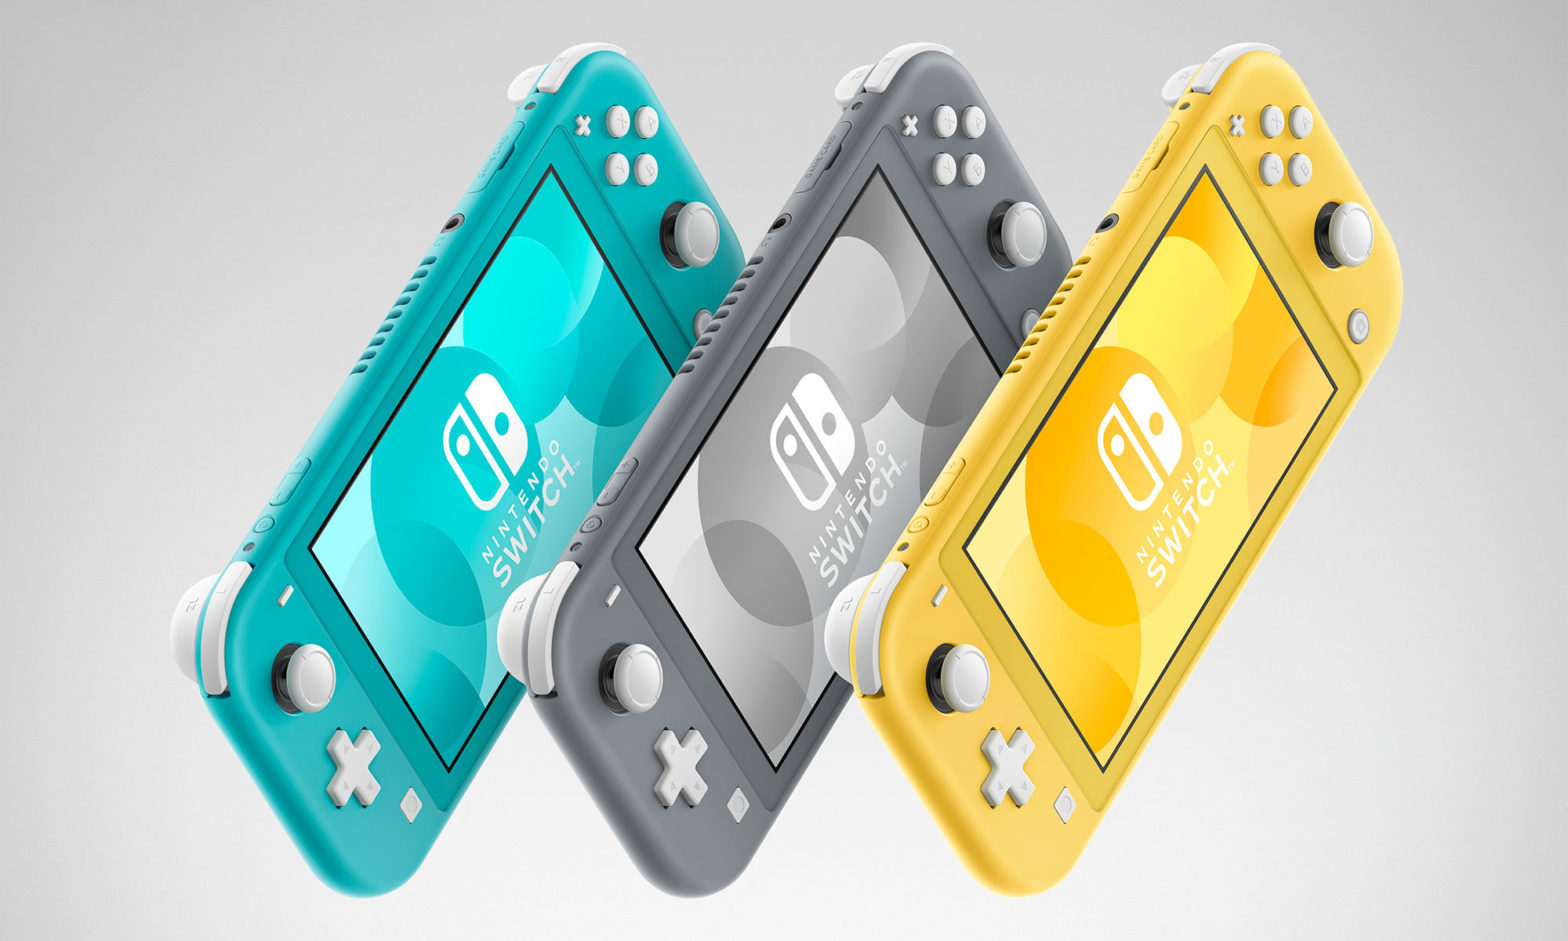 Nintendo Switch Lite Handheld Gaming Device